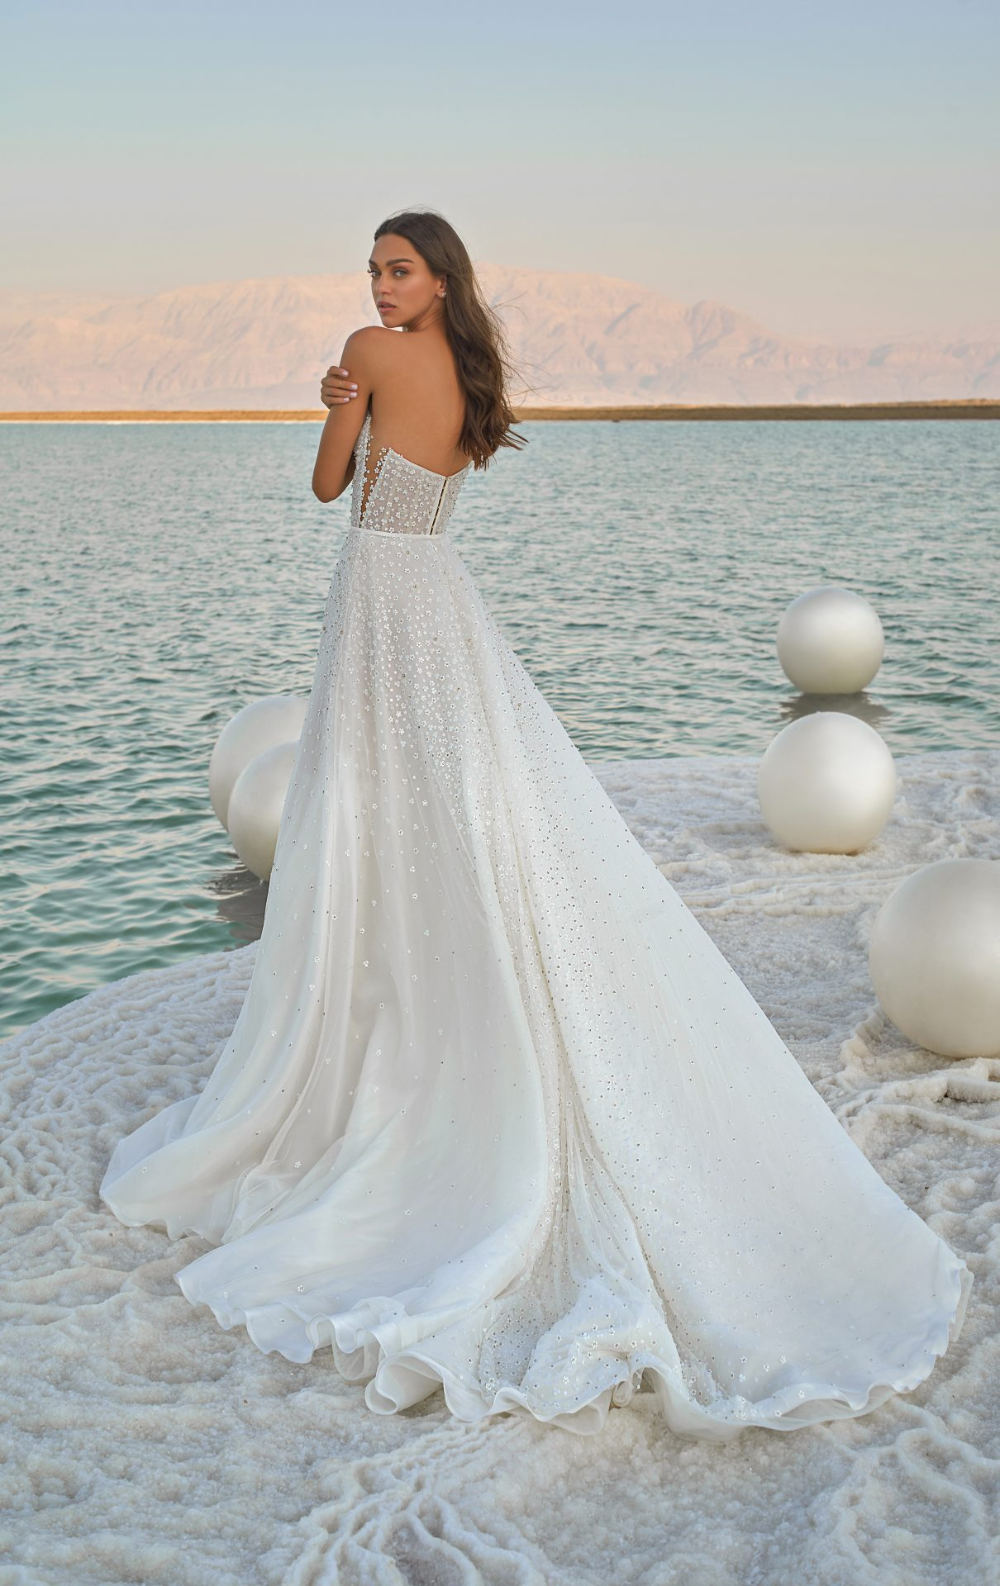 Lpg Jadore Wedding Dress From Our Fields Of Pearls A Strapless